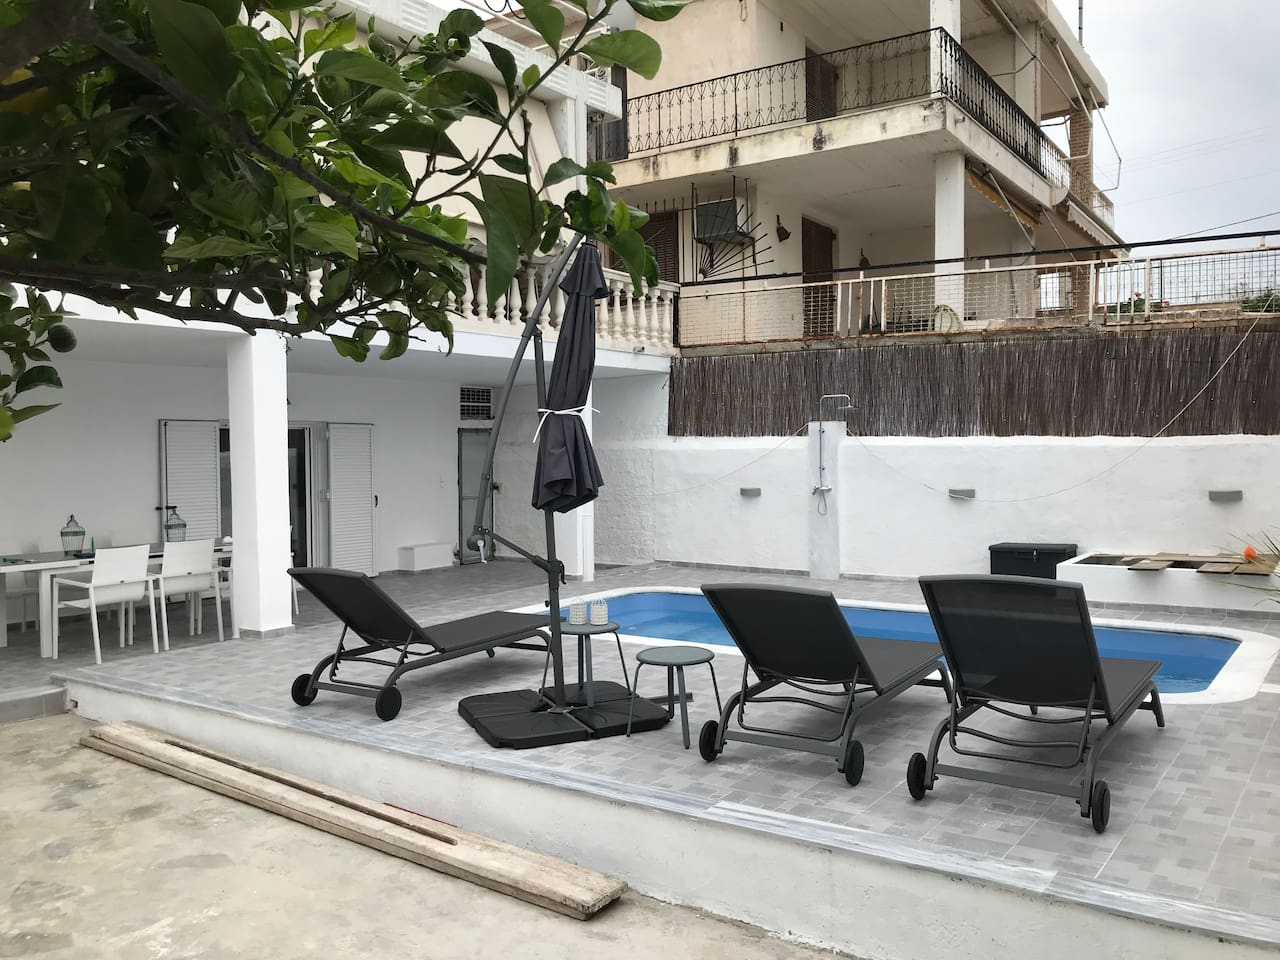 Brand new - high end look and feel. Private use swimming pool. King size beds. Everything you need to relax, enjoy and recharge. By the beach, restaurants, groceries, entertainment.